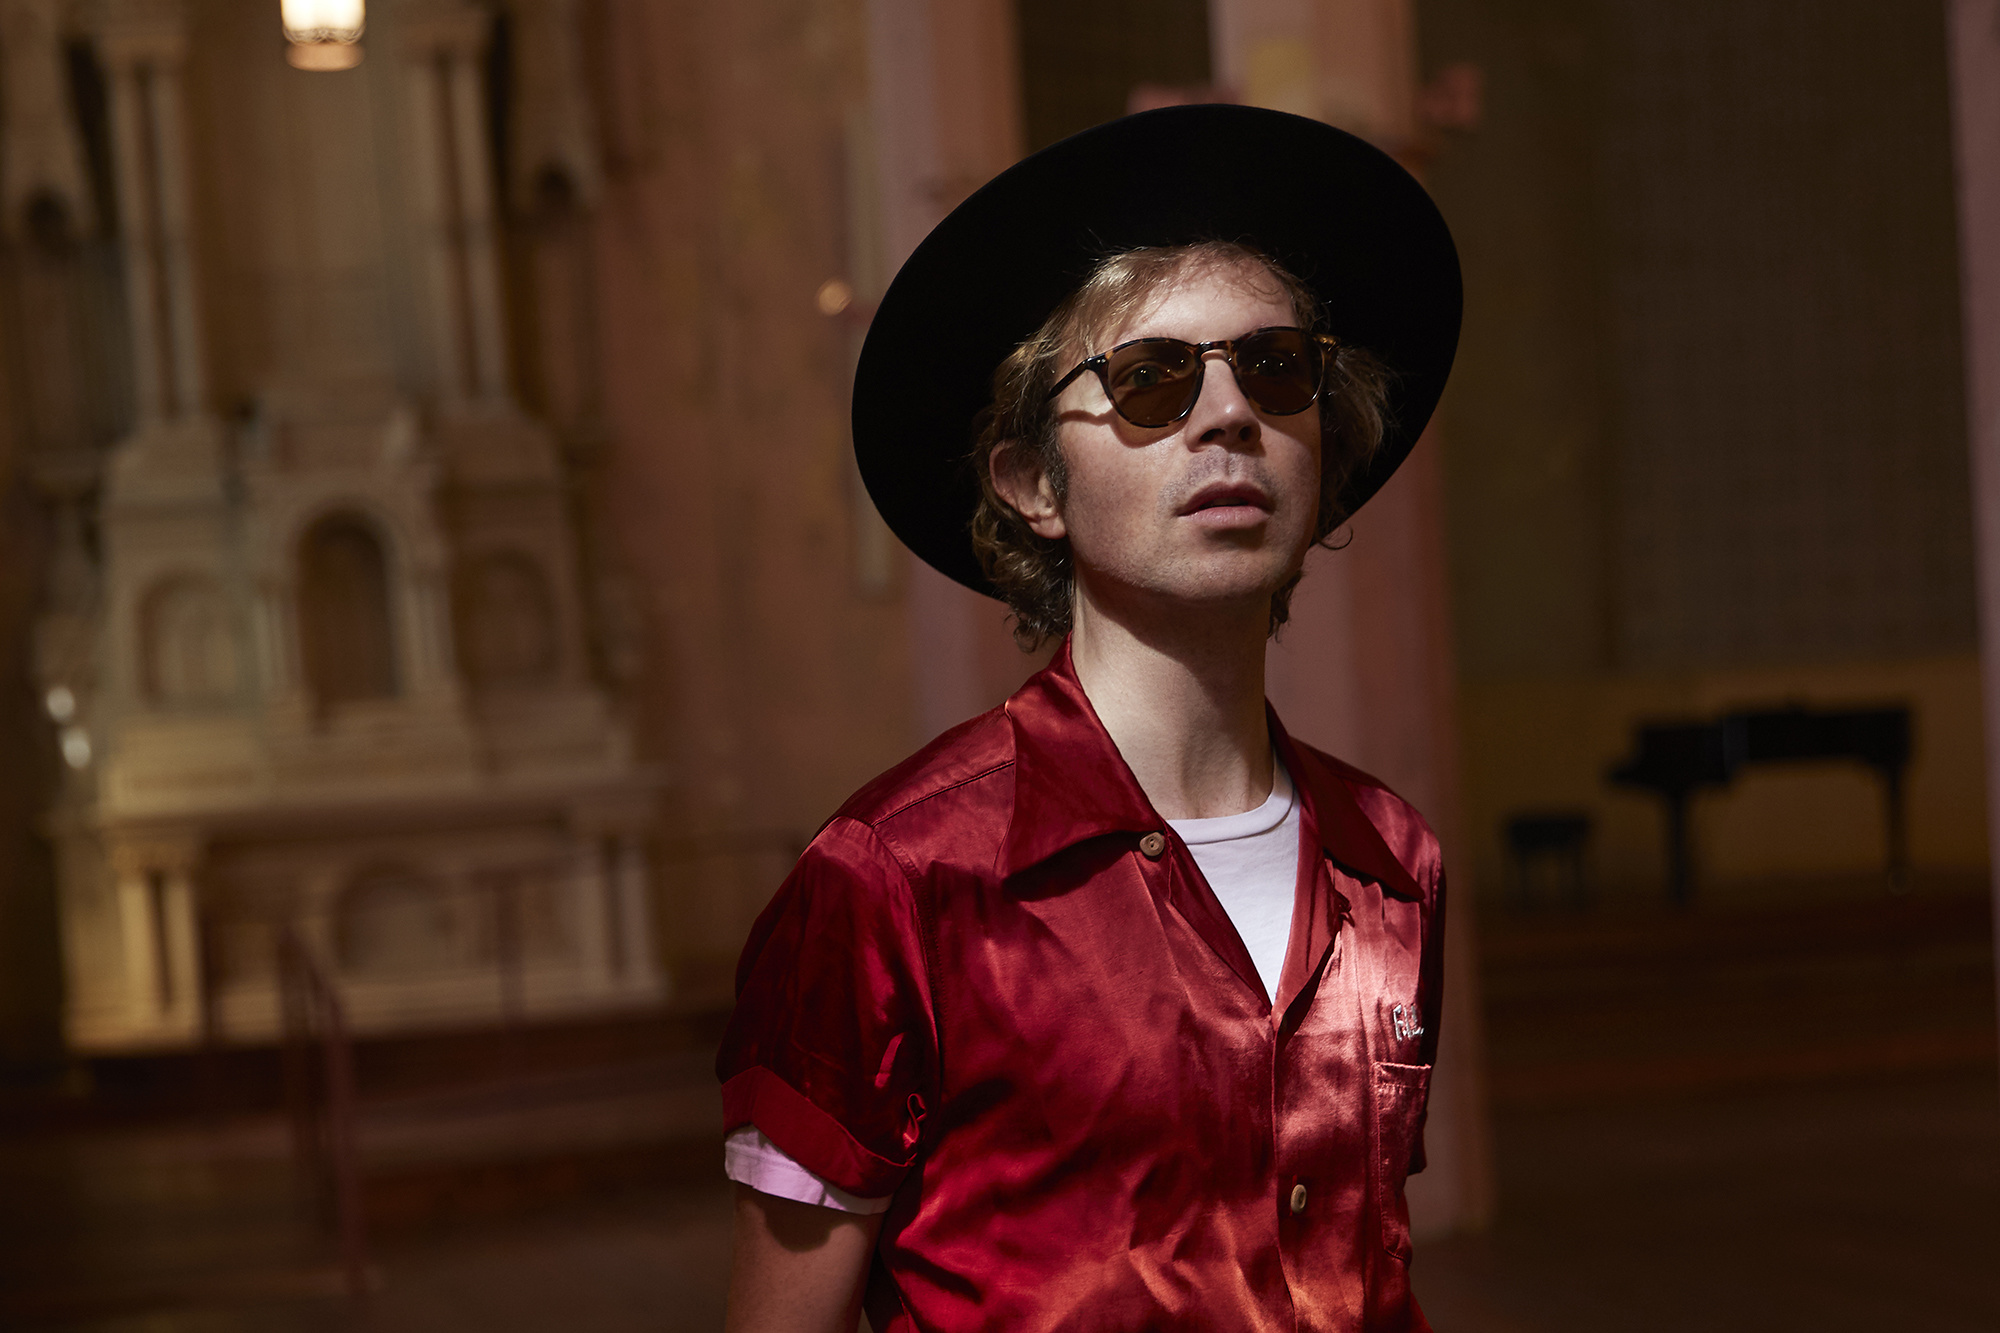 Beck + Pharrell = Mushy Synth Songs? Huh.